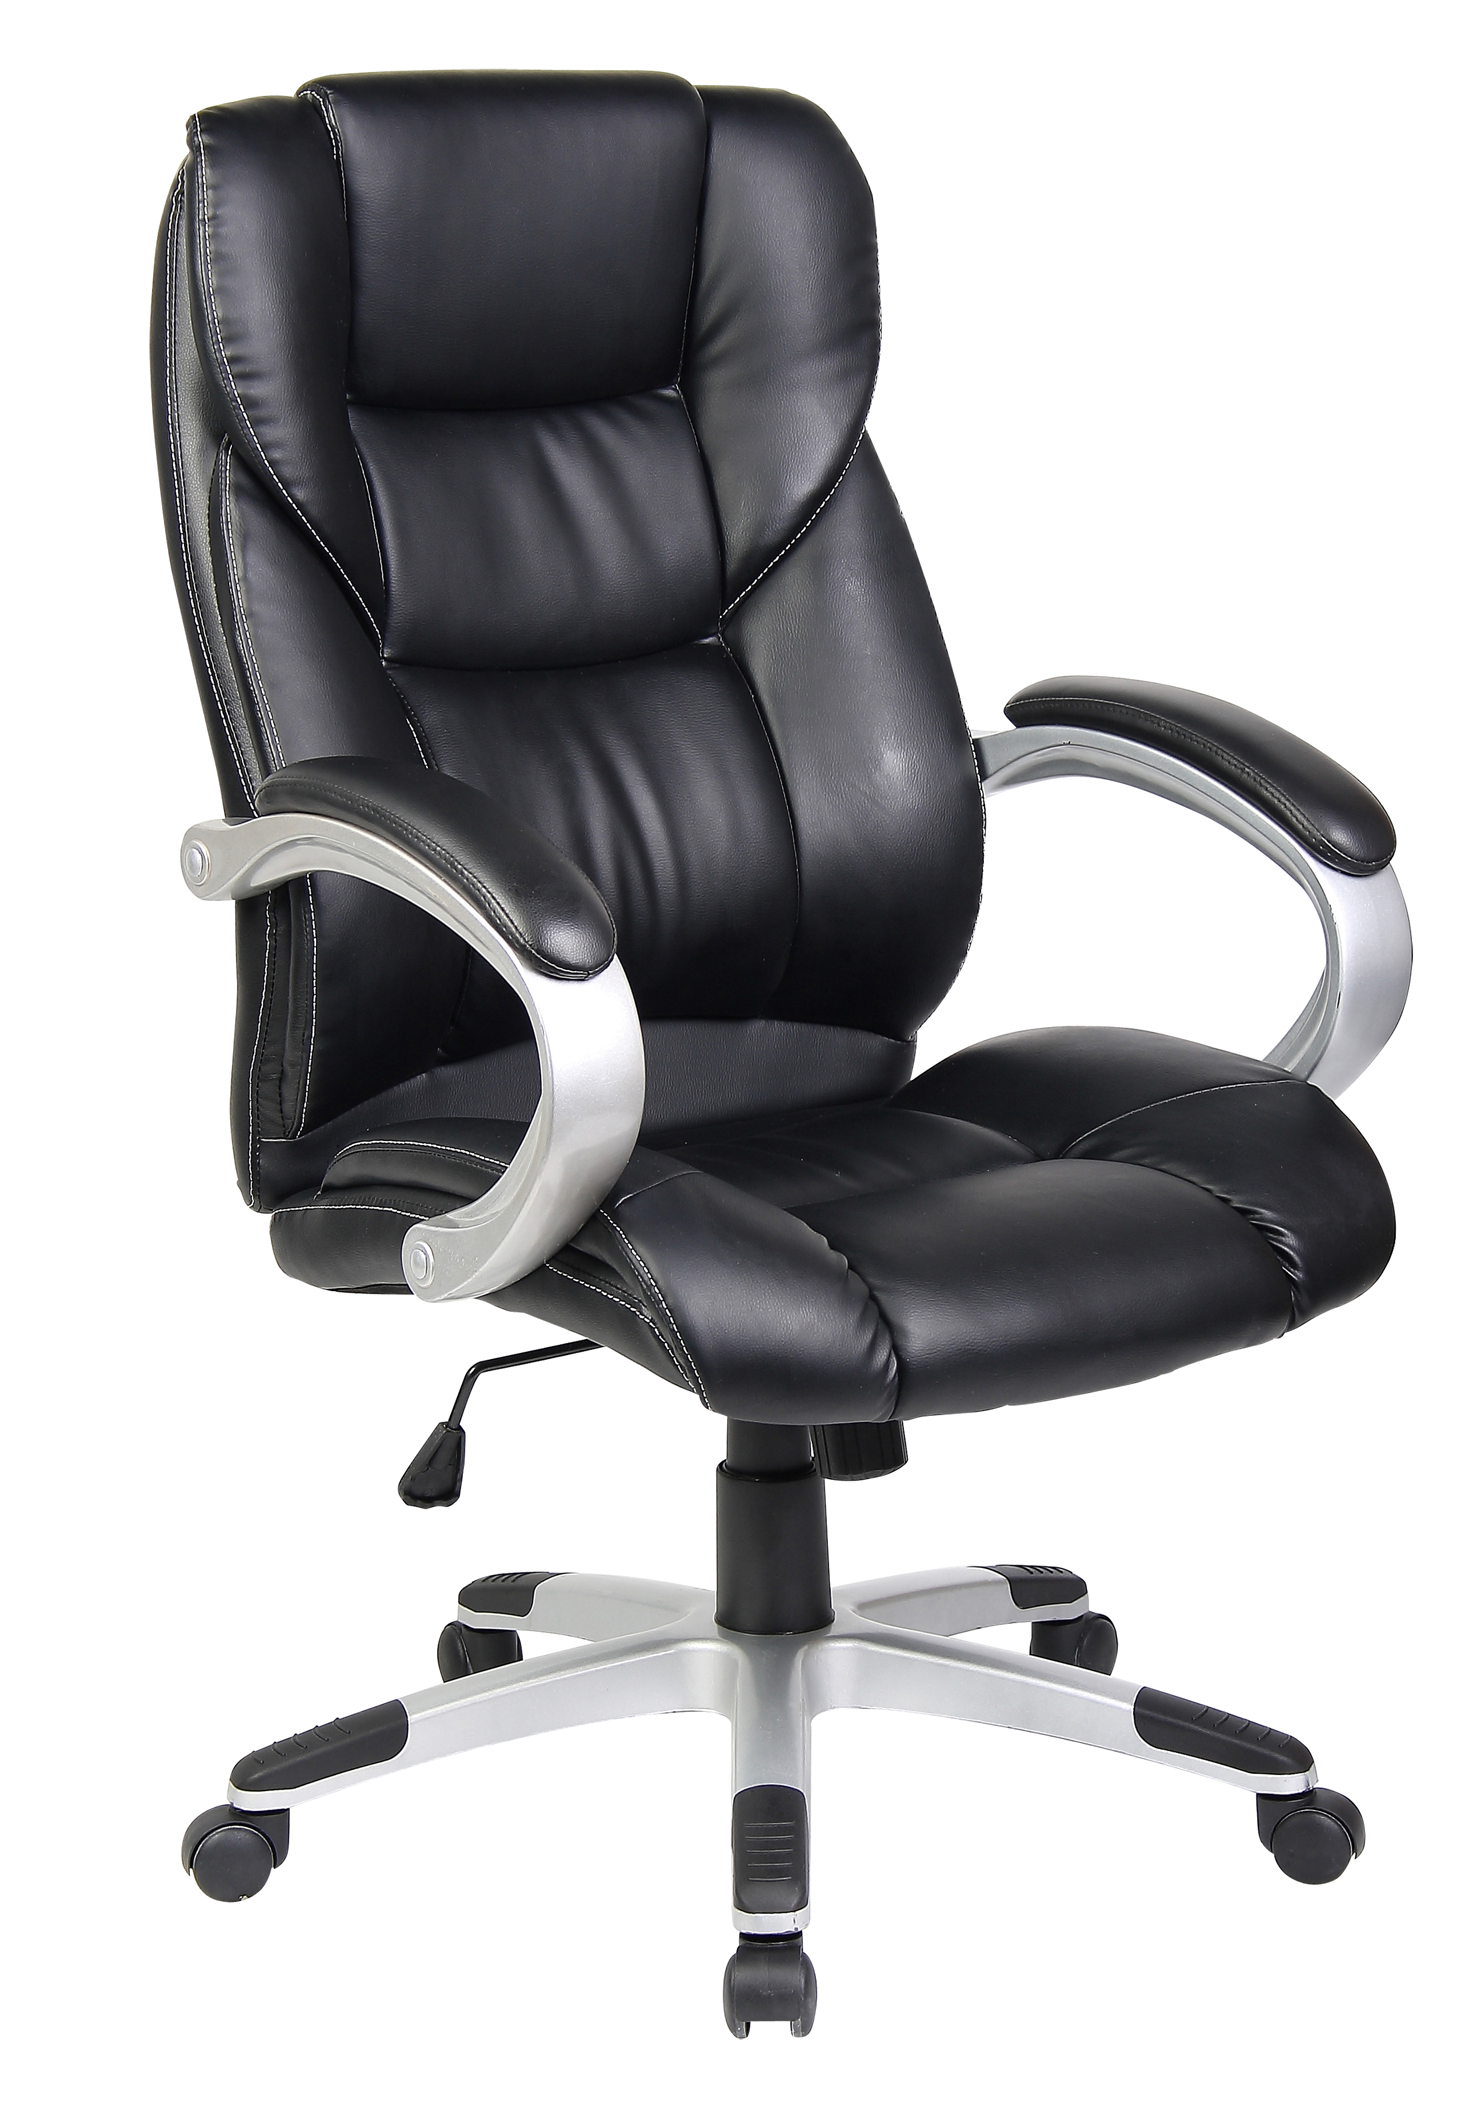 quality swivel pu leather executive office furnitue